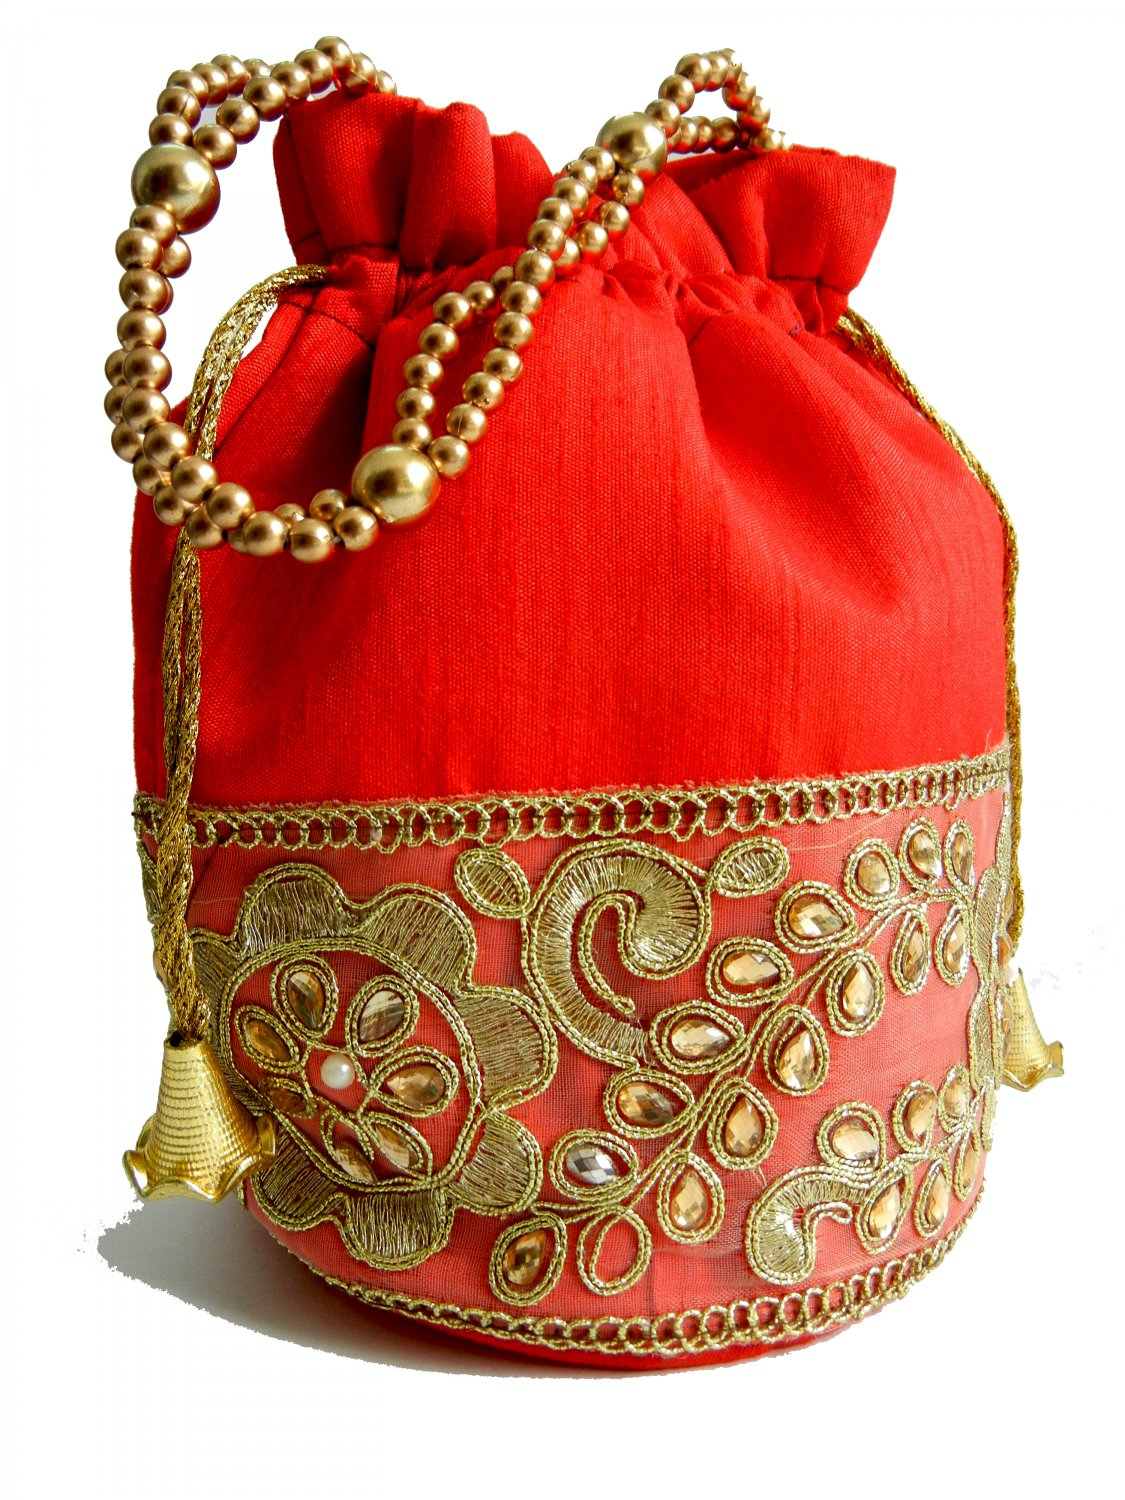 Indian Embroidered Handwoven Silk Lace Vintage Handbag for Women by Indiesoul